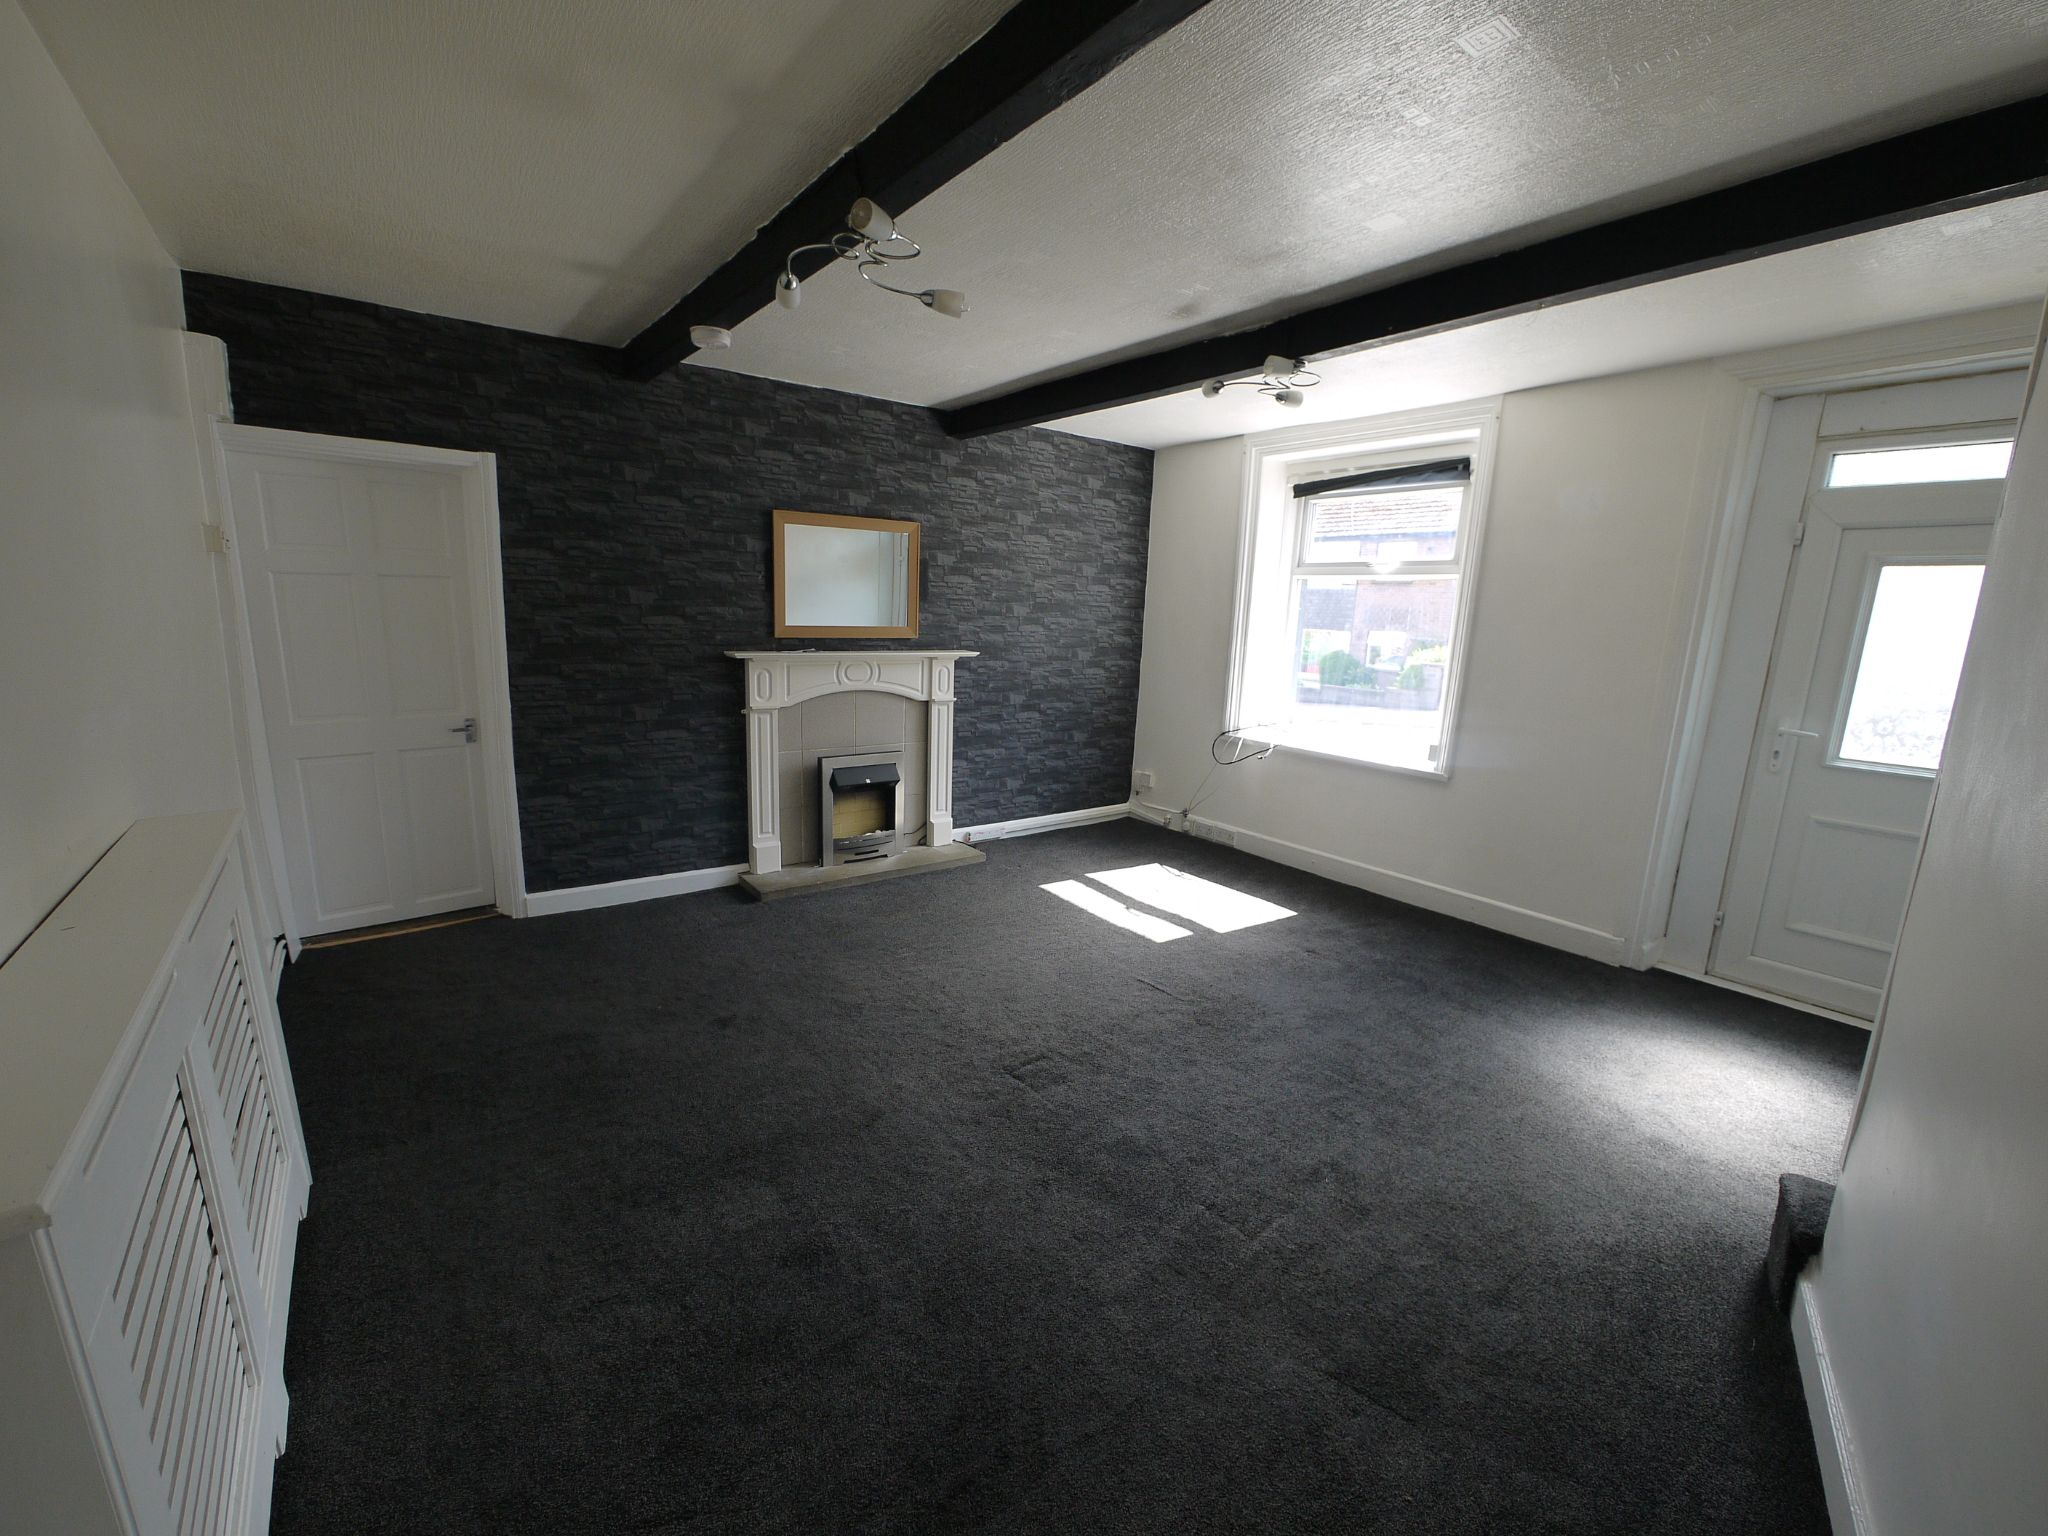 3 bedroom detached house For Sale in Brighouse - Lounge.